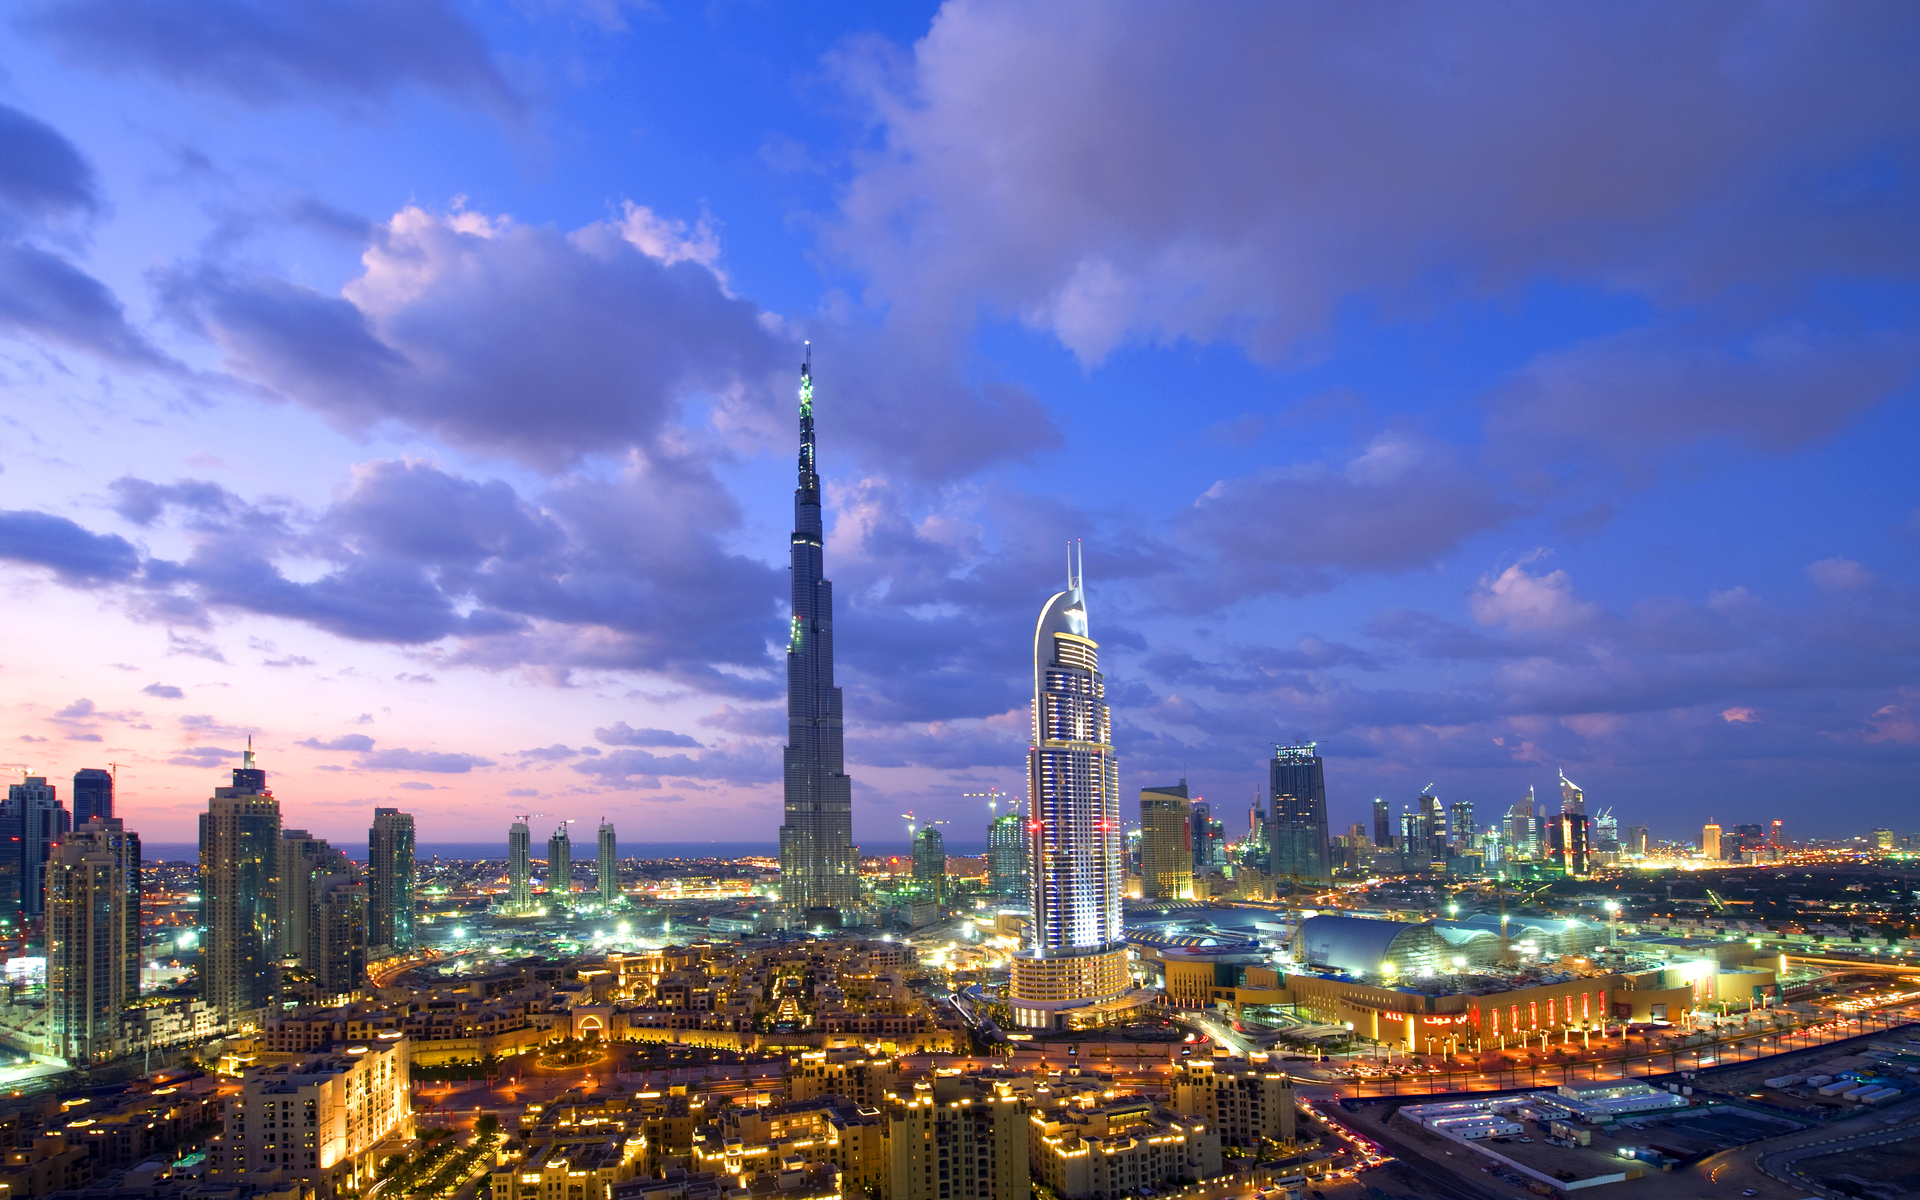 Dubai 1208 high quality Backgrounds for mobile iphone desktop 1920x1200